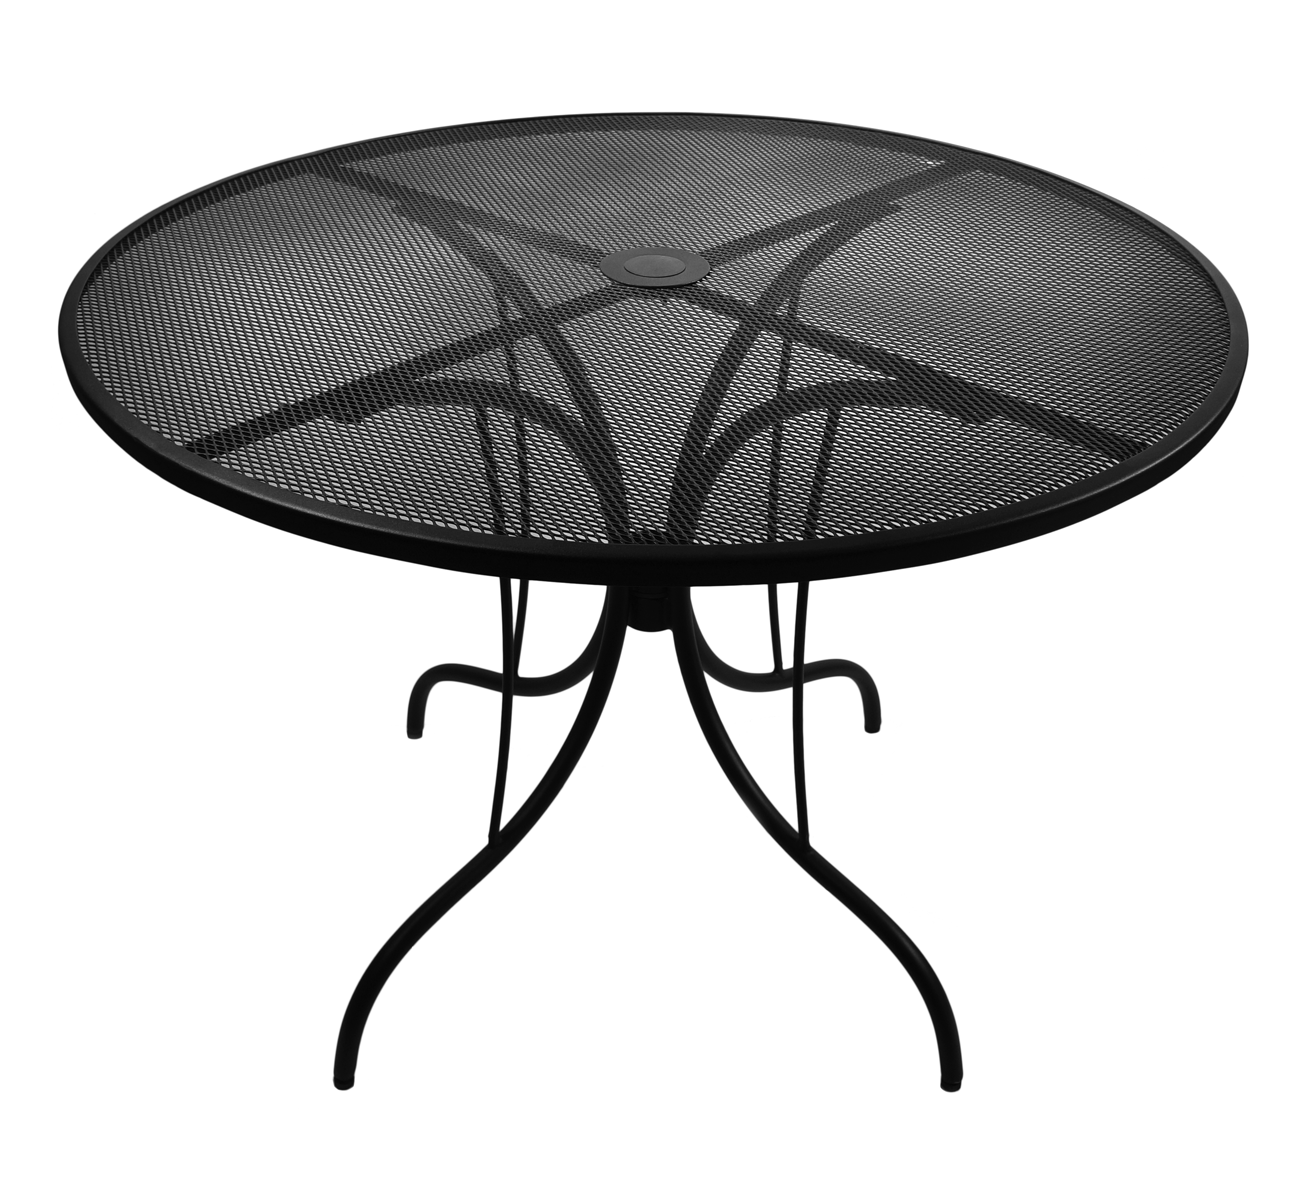 30 Round Galvanized Steel Mesh Commercial Outdoor Table